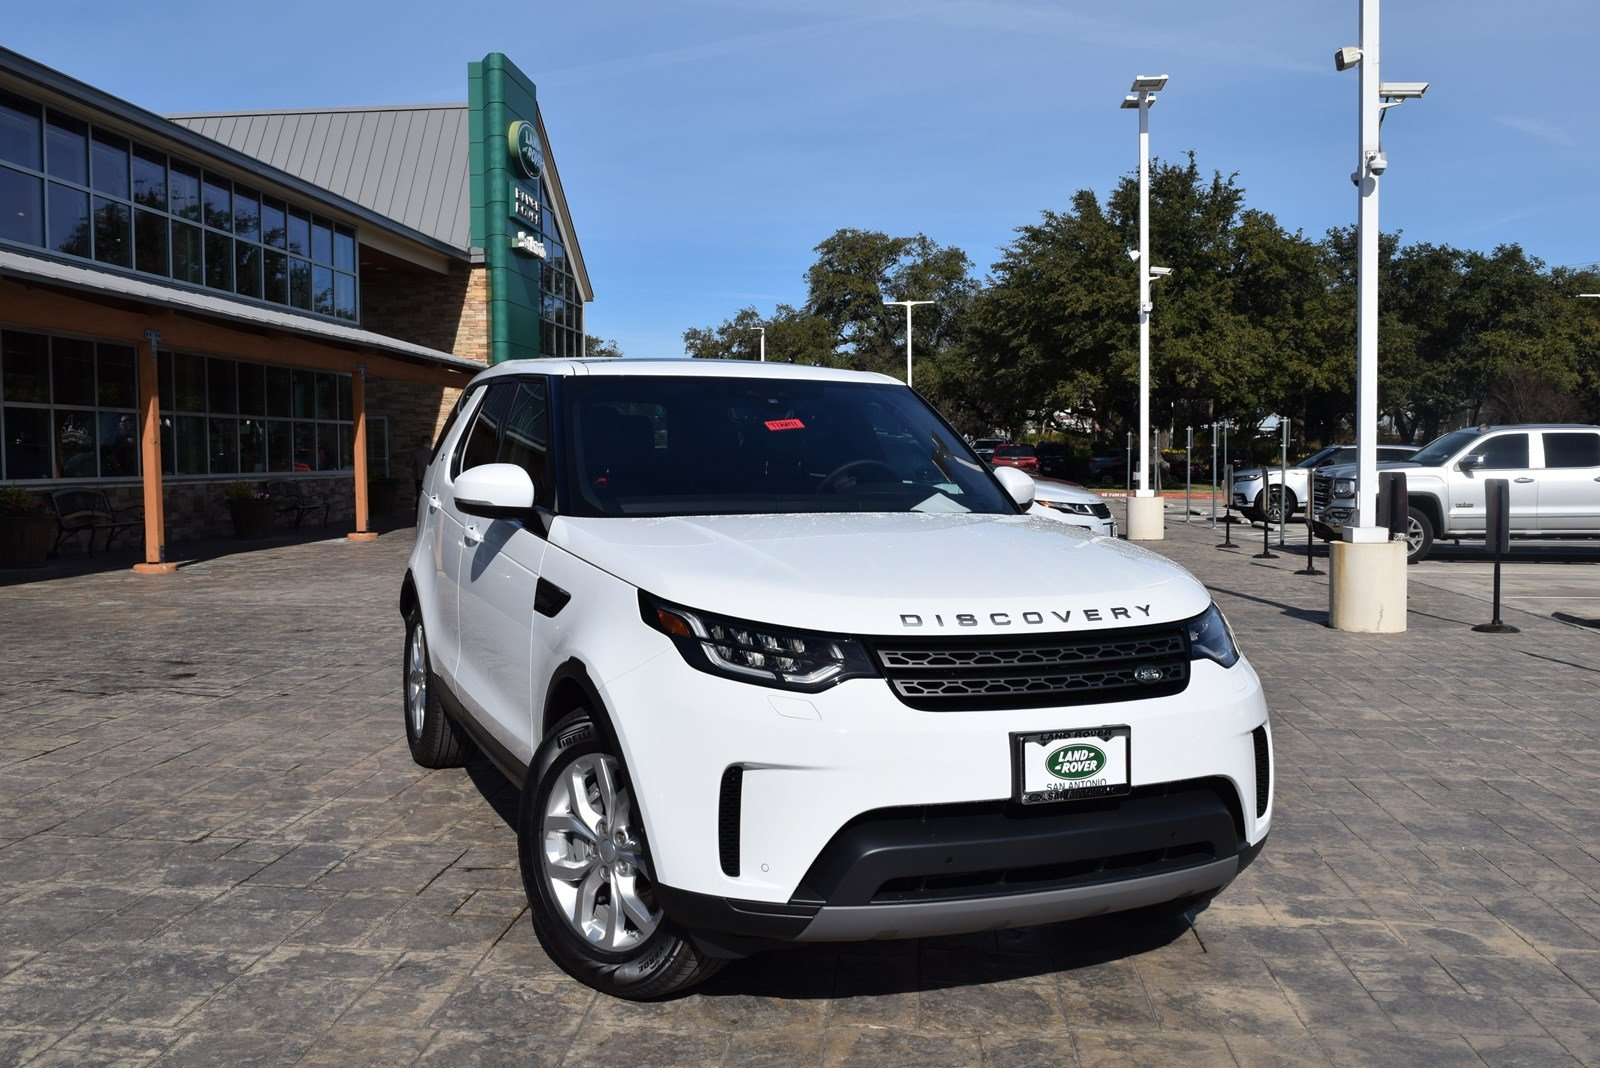 Land Rover Discovery San Antonio >> New 2019 Land Rover Discovery Se Suv In San Antonio 972241 Land